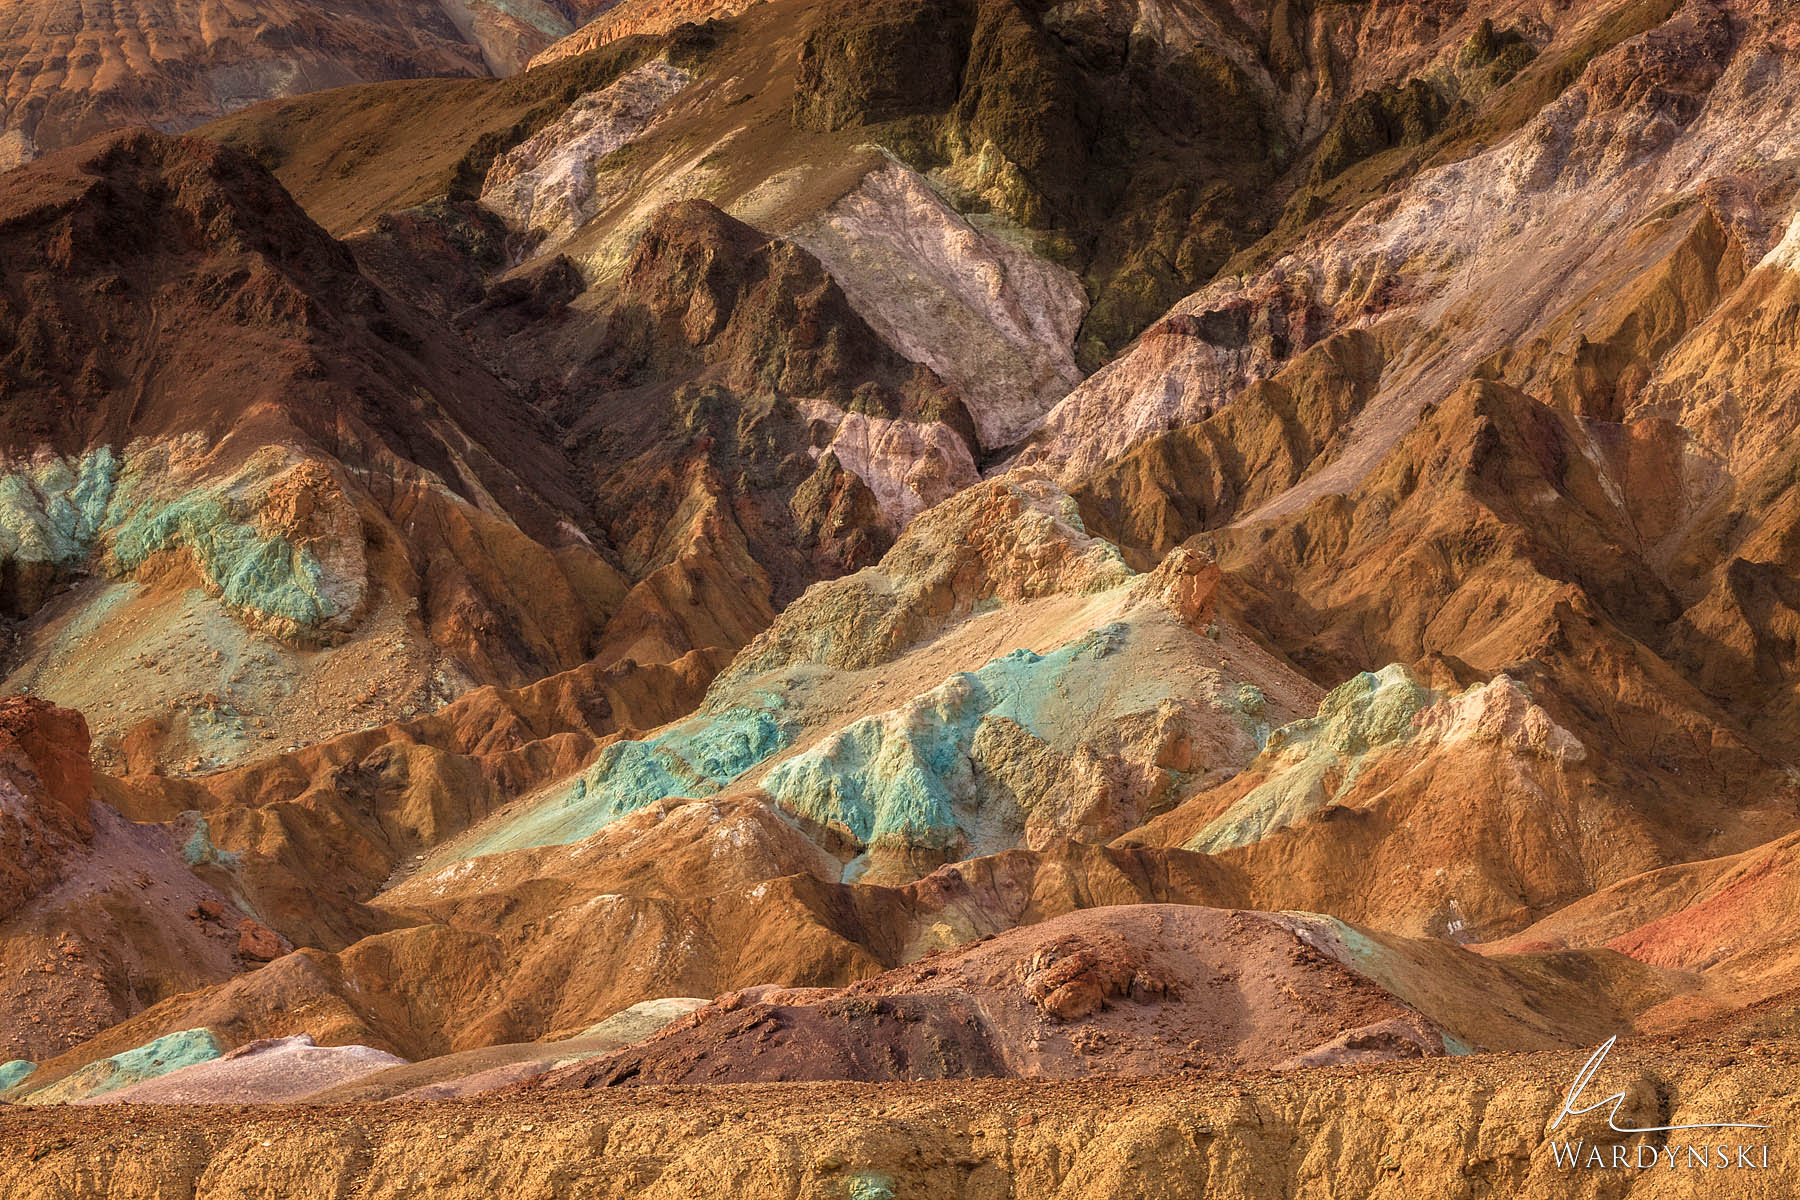 Fine Art Print | Limited Edition of 25  The Artist's Palette in Death Valley National Park, California is one of the strangest...